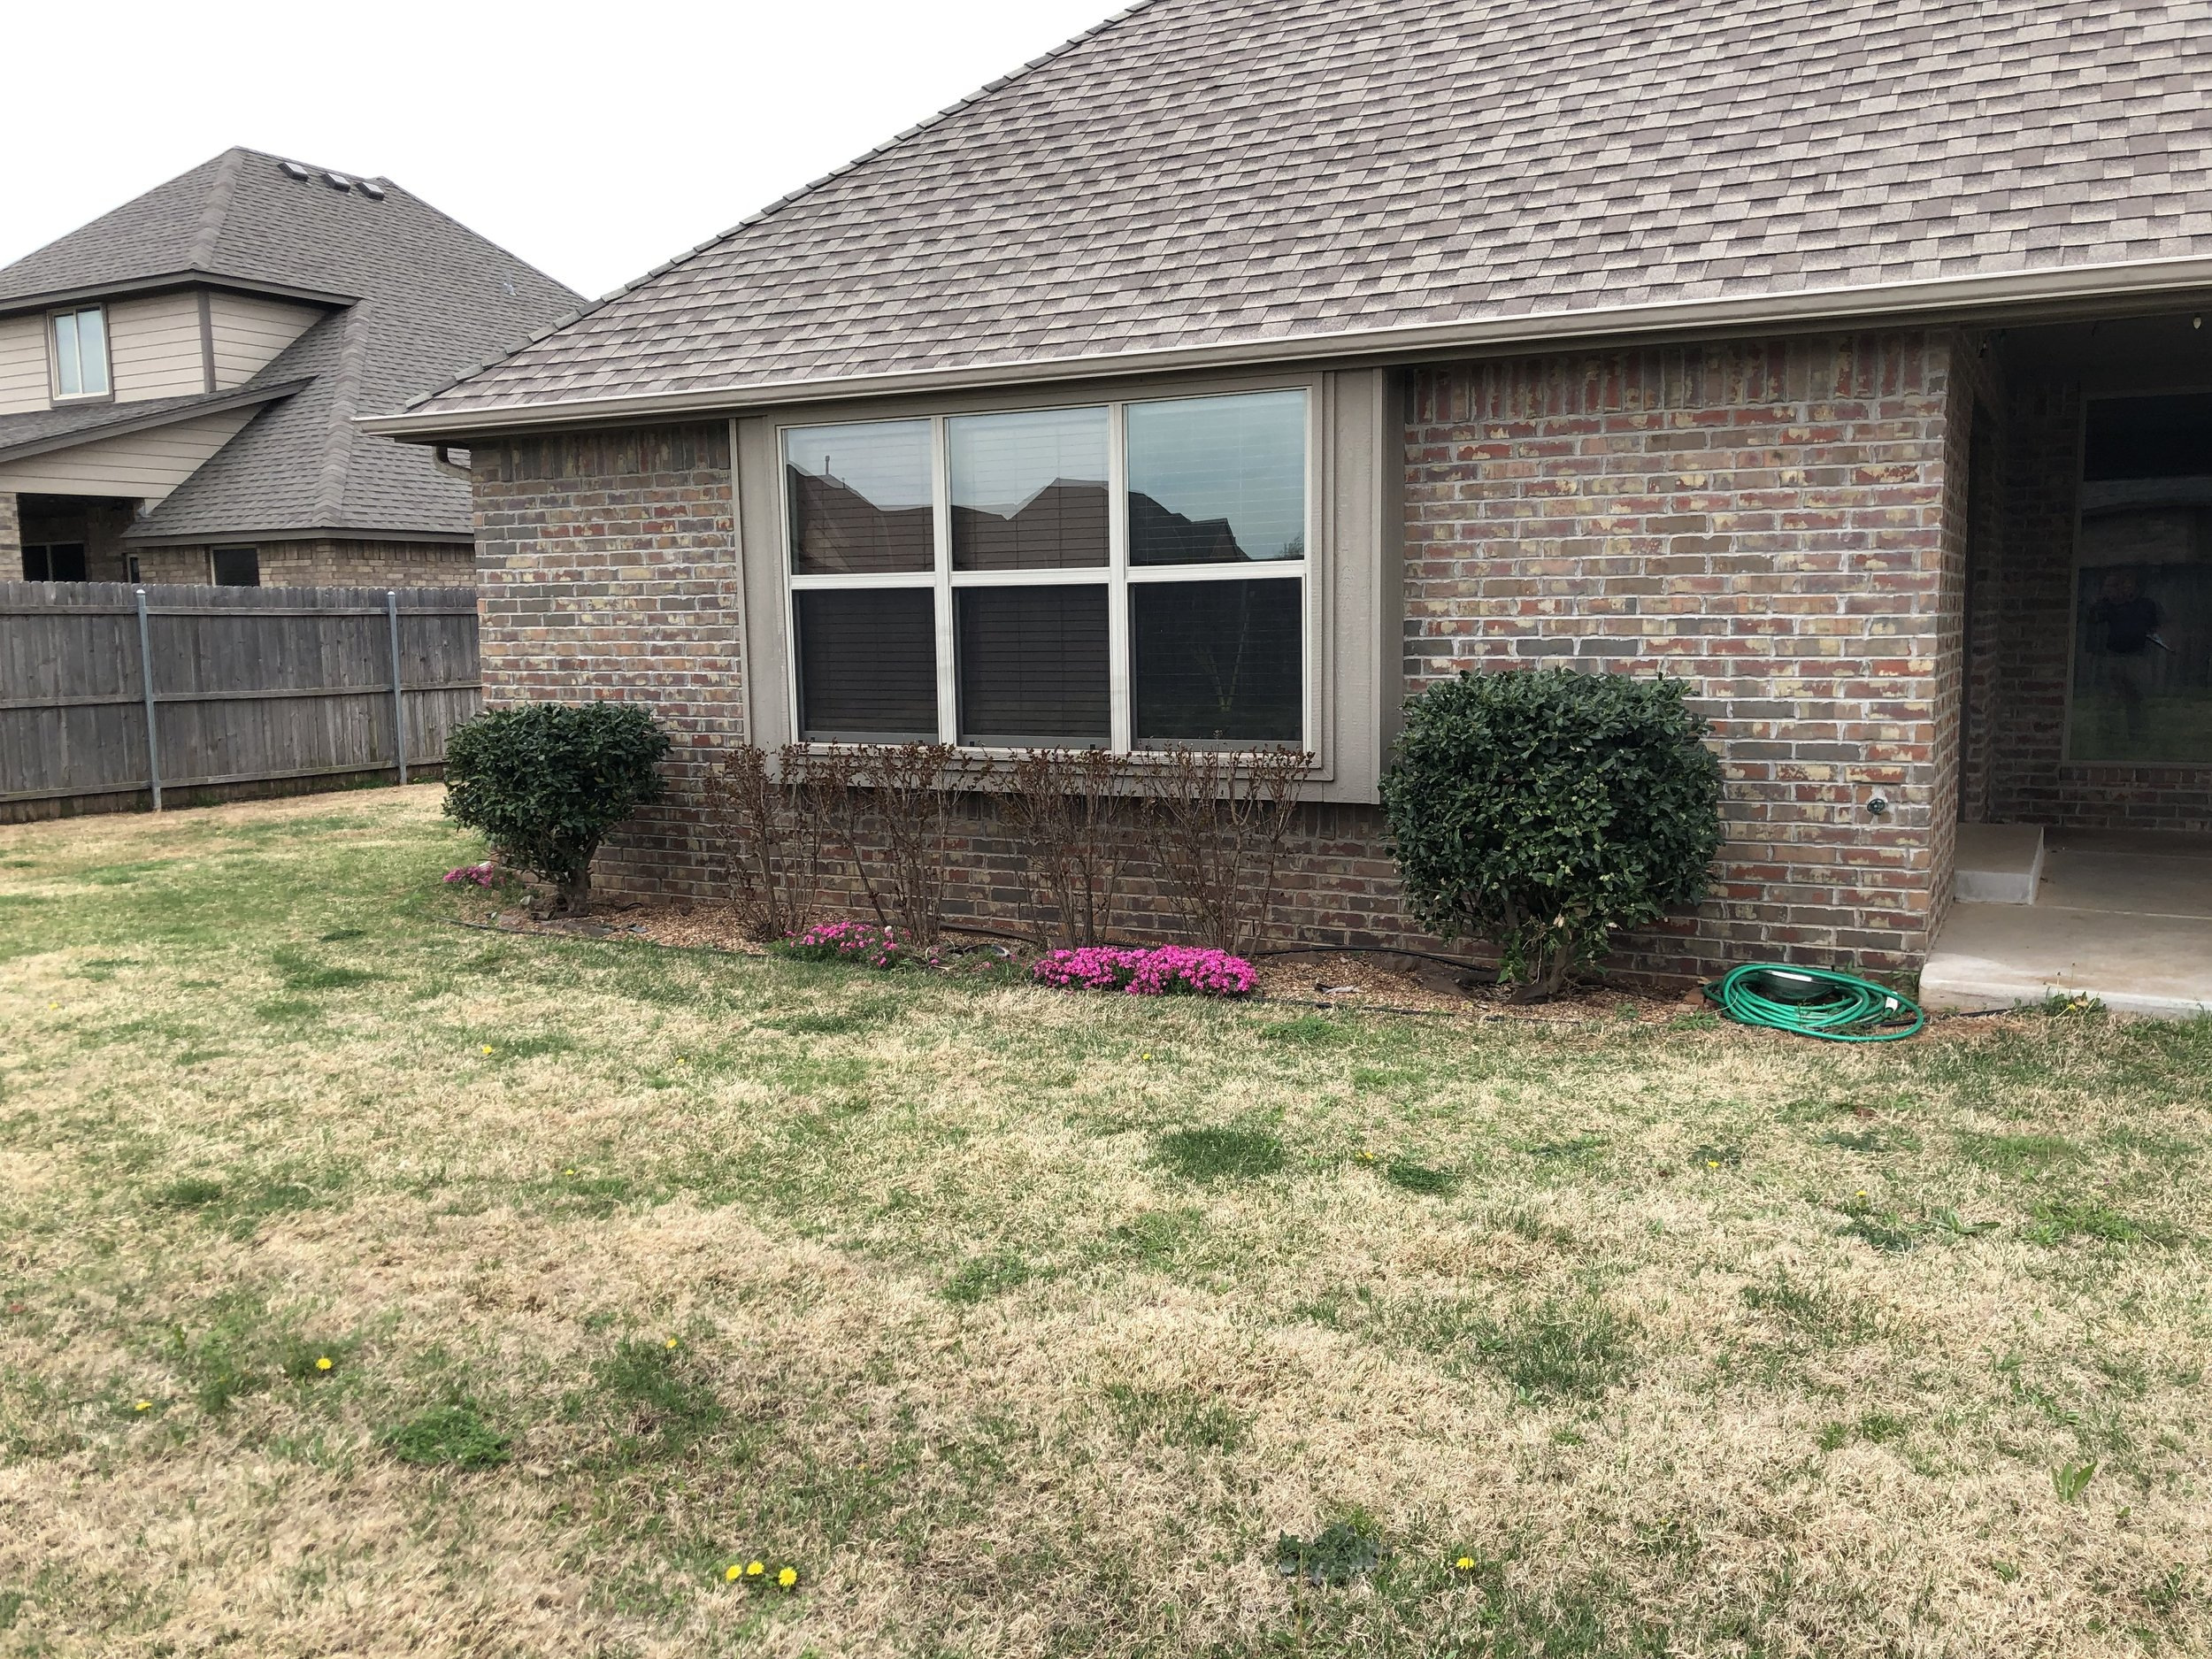 How a Bermuda lawn looks in April when no fall pre-emergent applications were made.